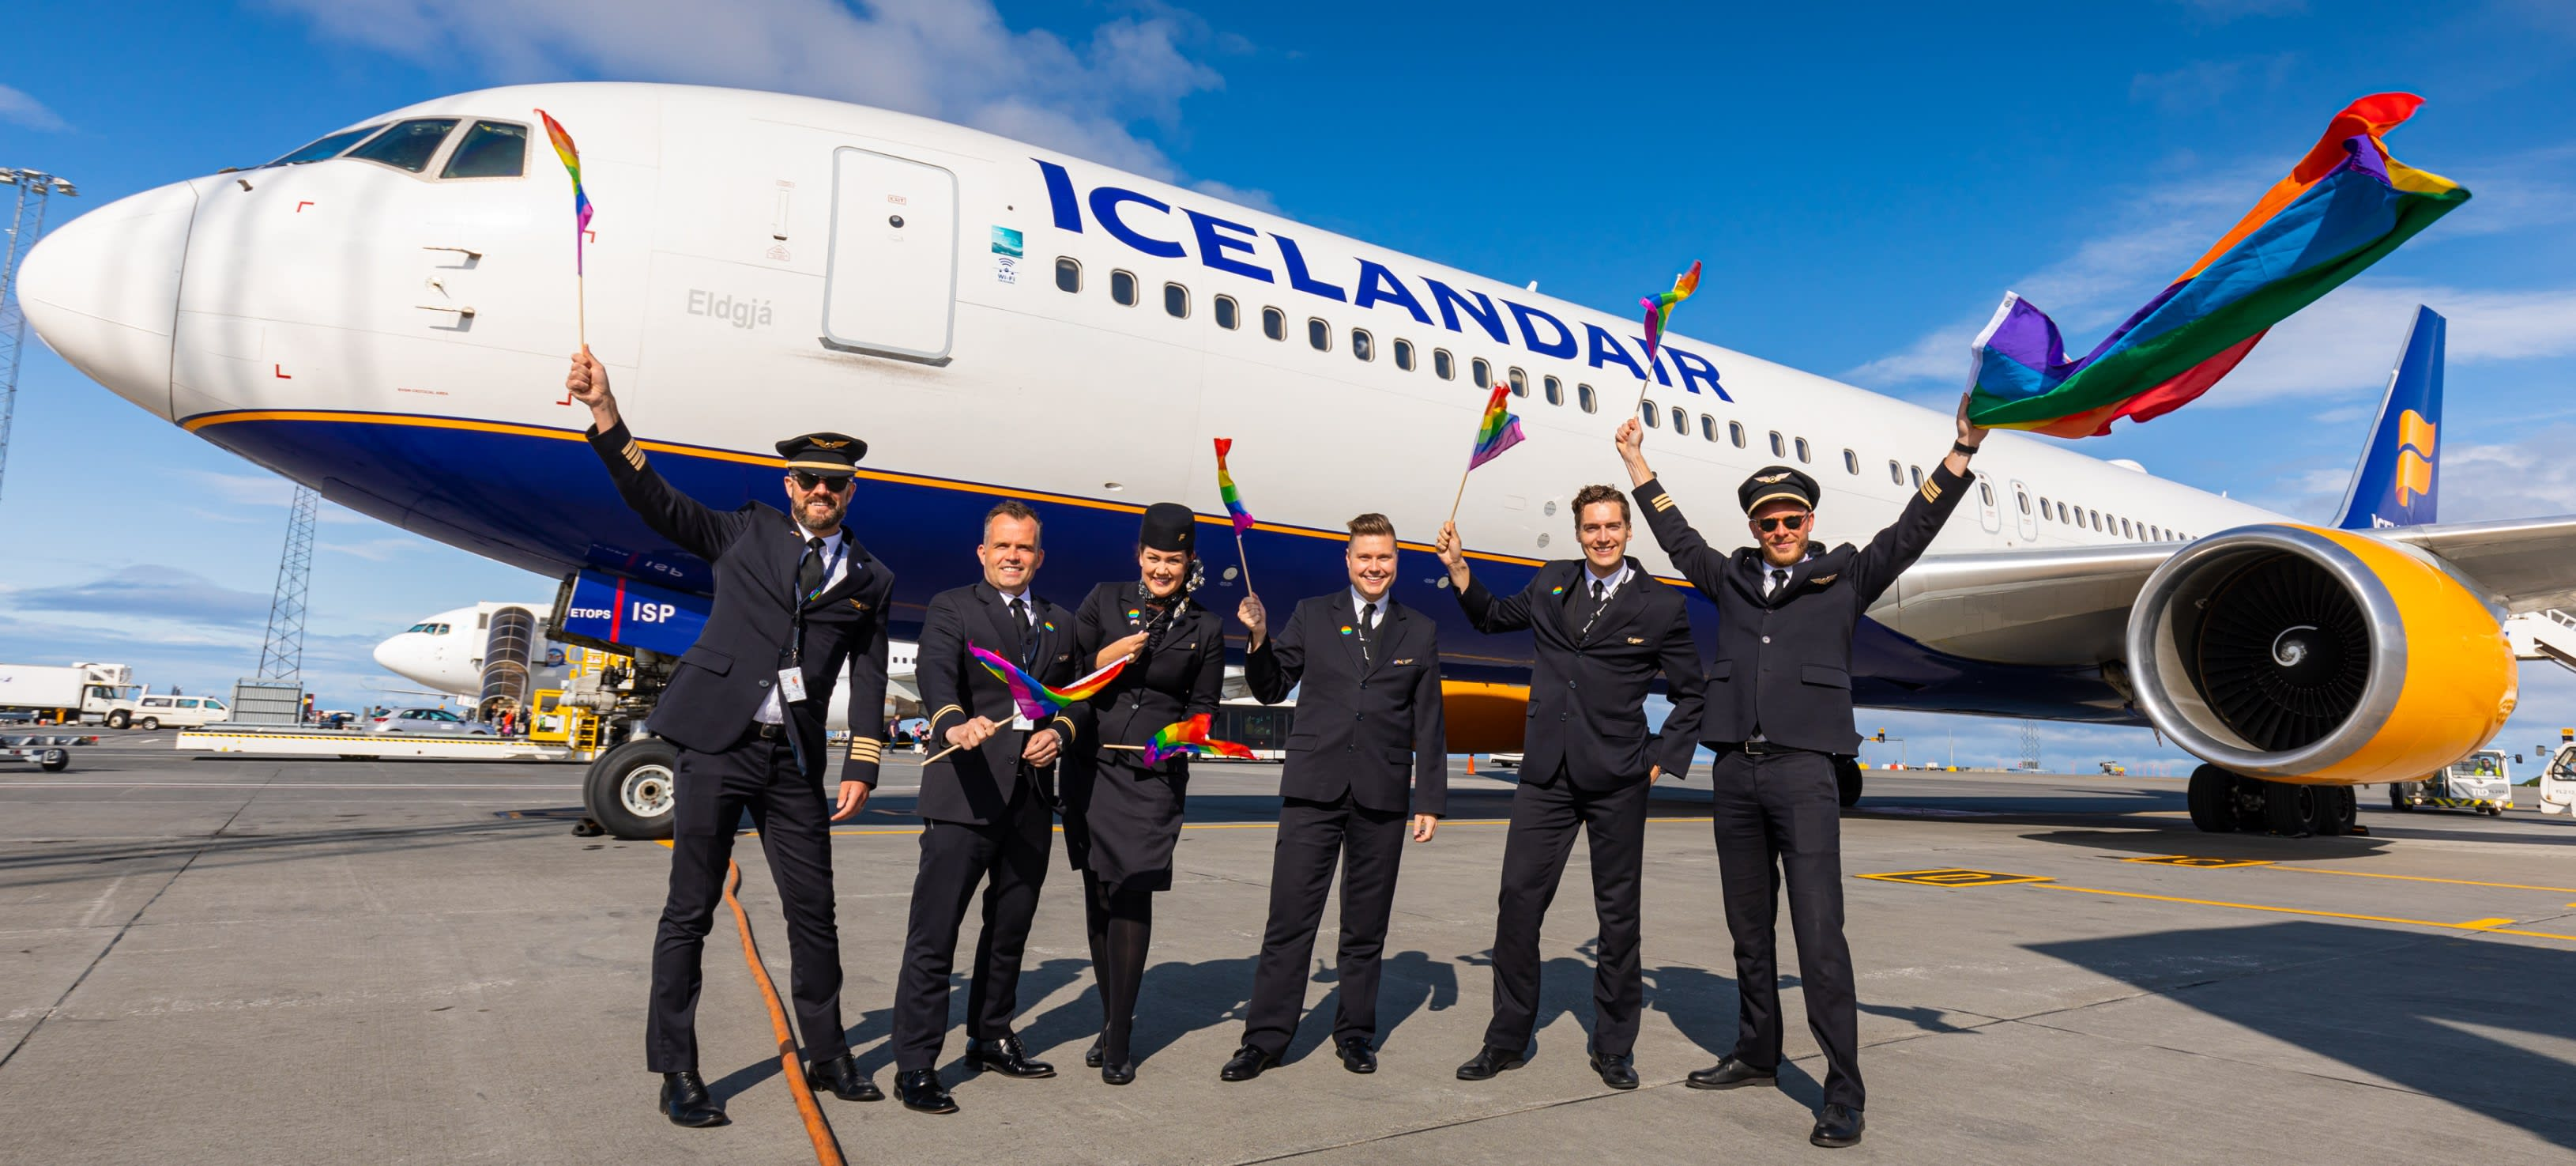 A group of airline staff flying rainbow Pride flags as they stand outside an Icelandair aircraft